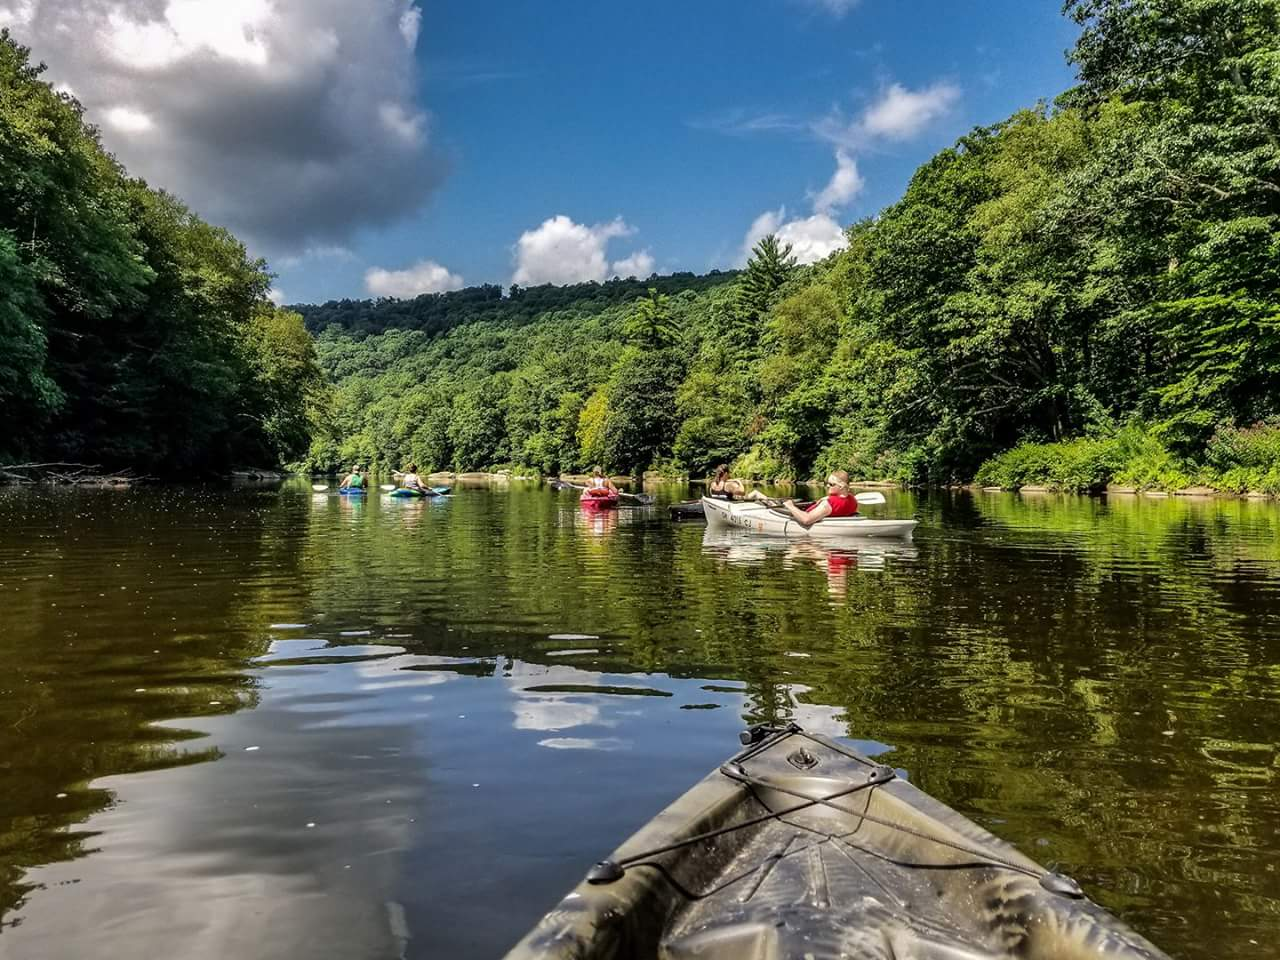 Clarion County, PA - Visit PA GO   Visit PA Great Outdoors